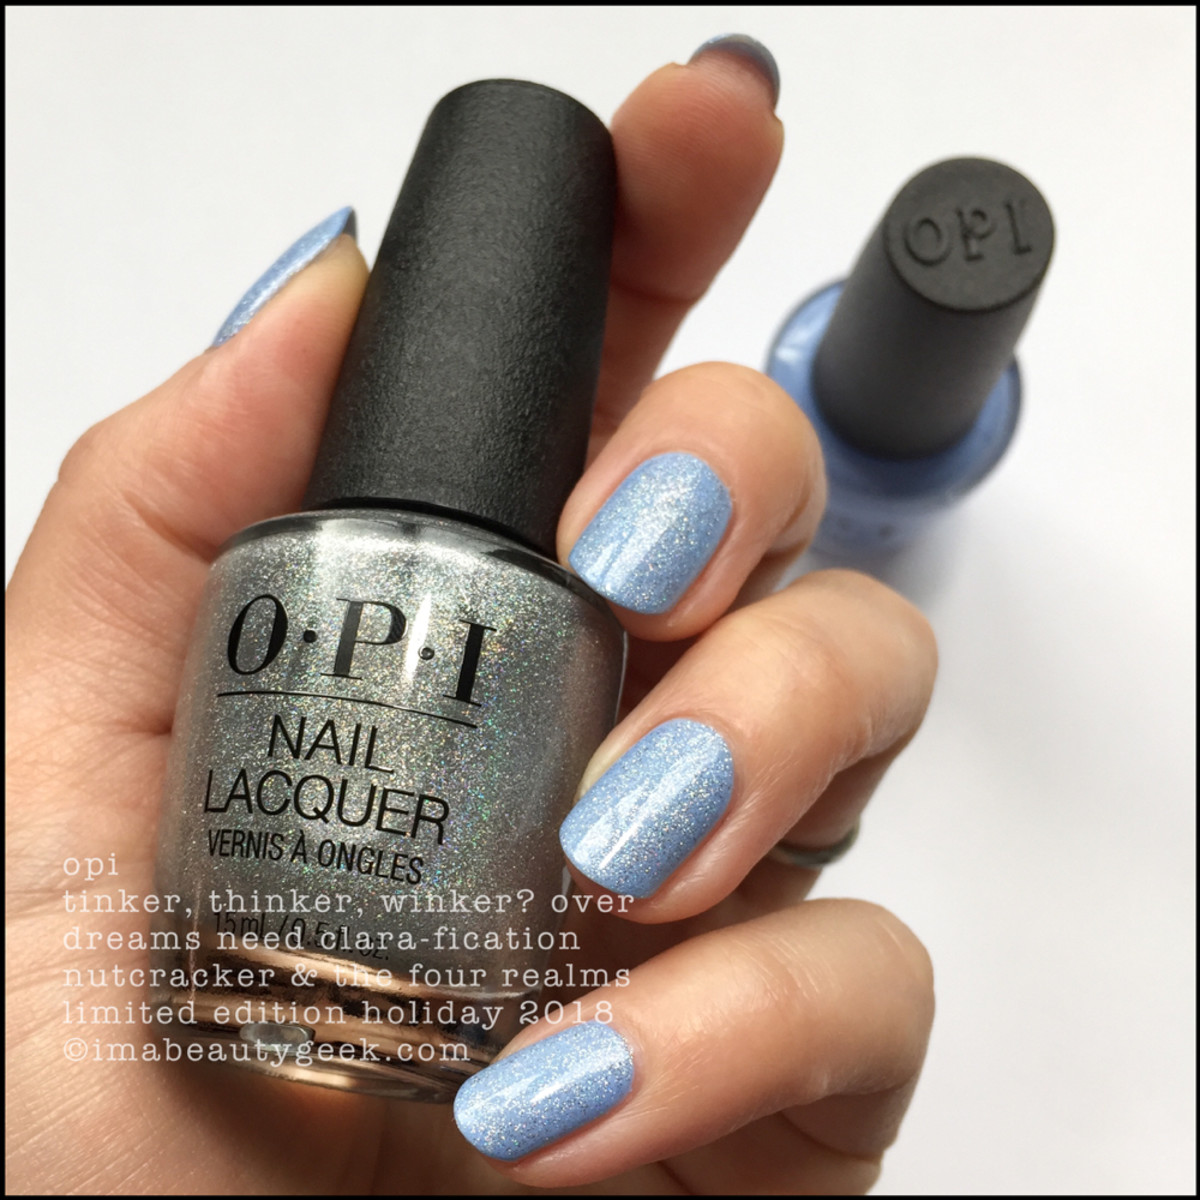 OPI Tinker, Thinker, Winker? over Dreams Need Clara-fication - OPI Nutcracker Holiday 2018